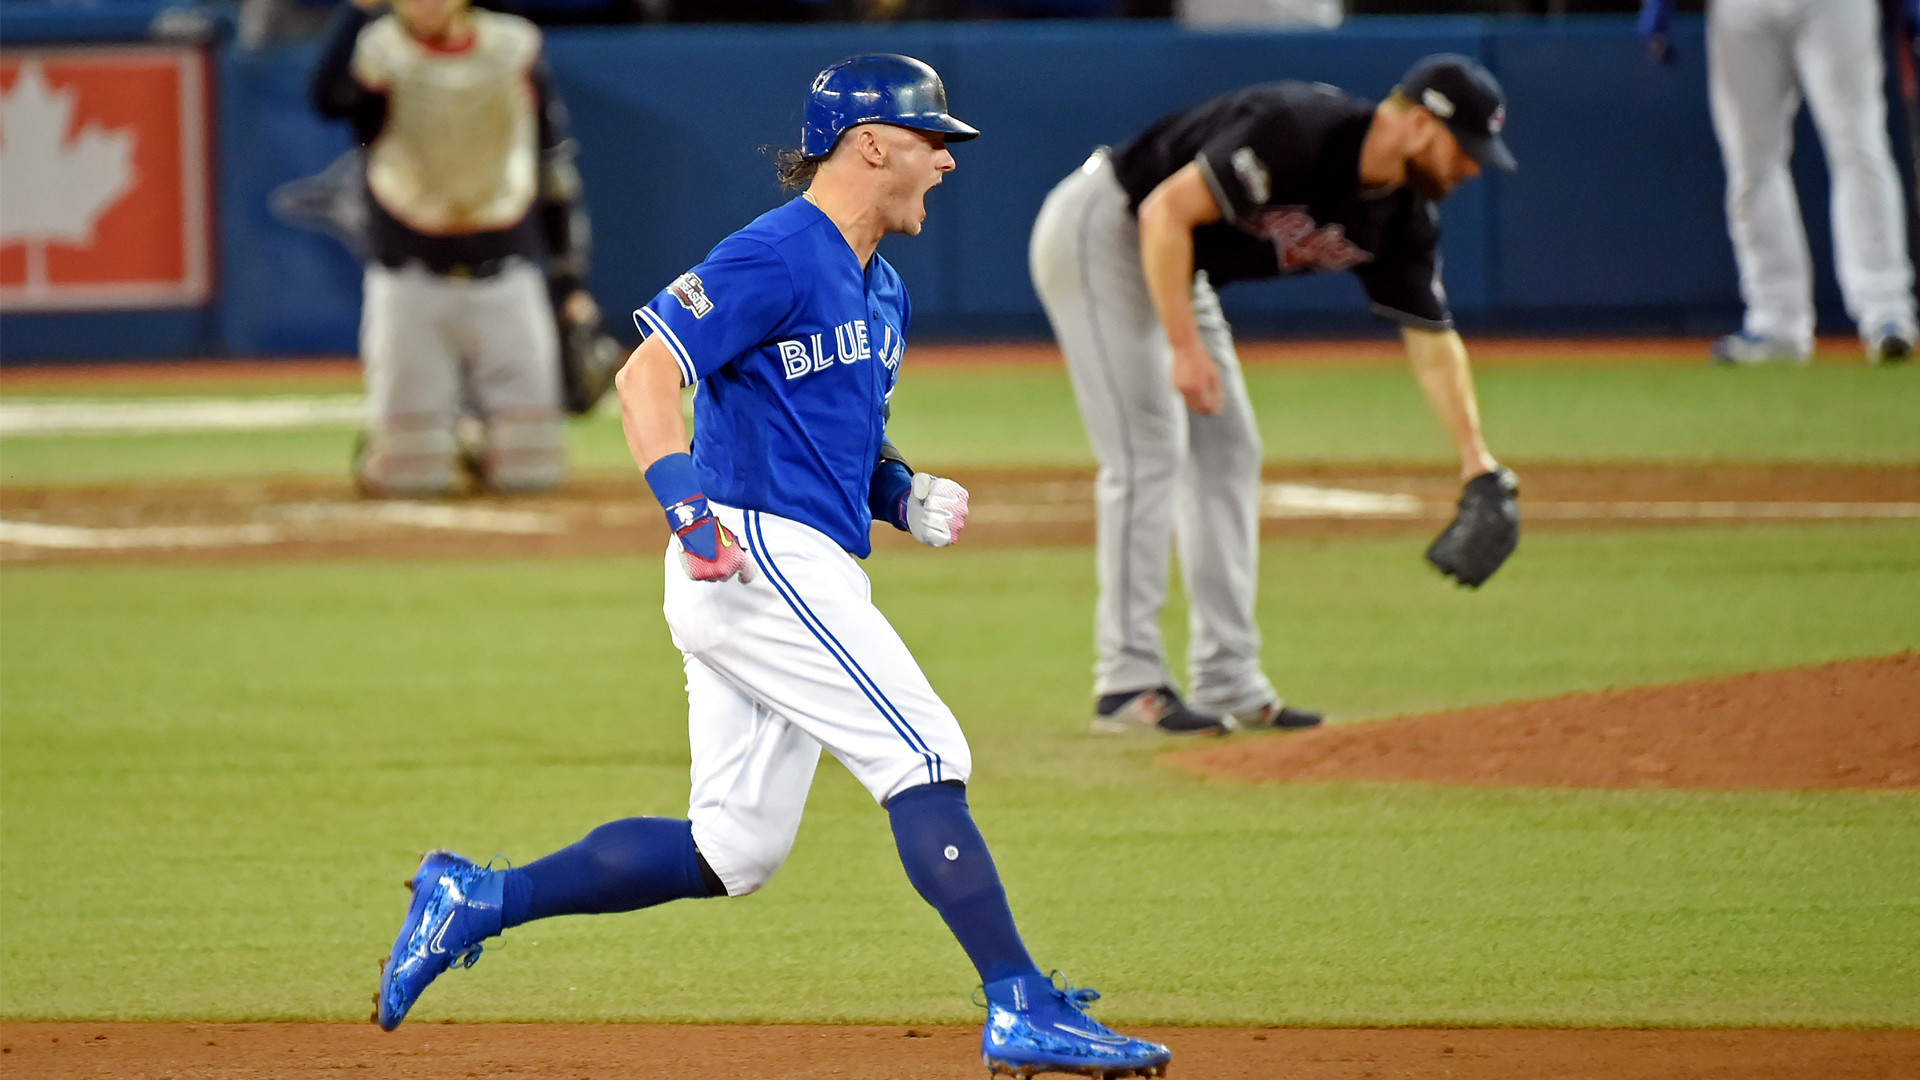 1920x1080 Donaldson homers, Blue Jays beat Indians to stay alive in ALCS